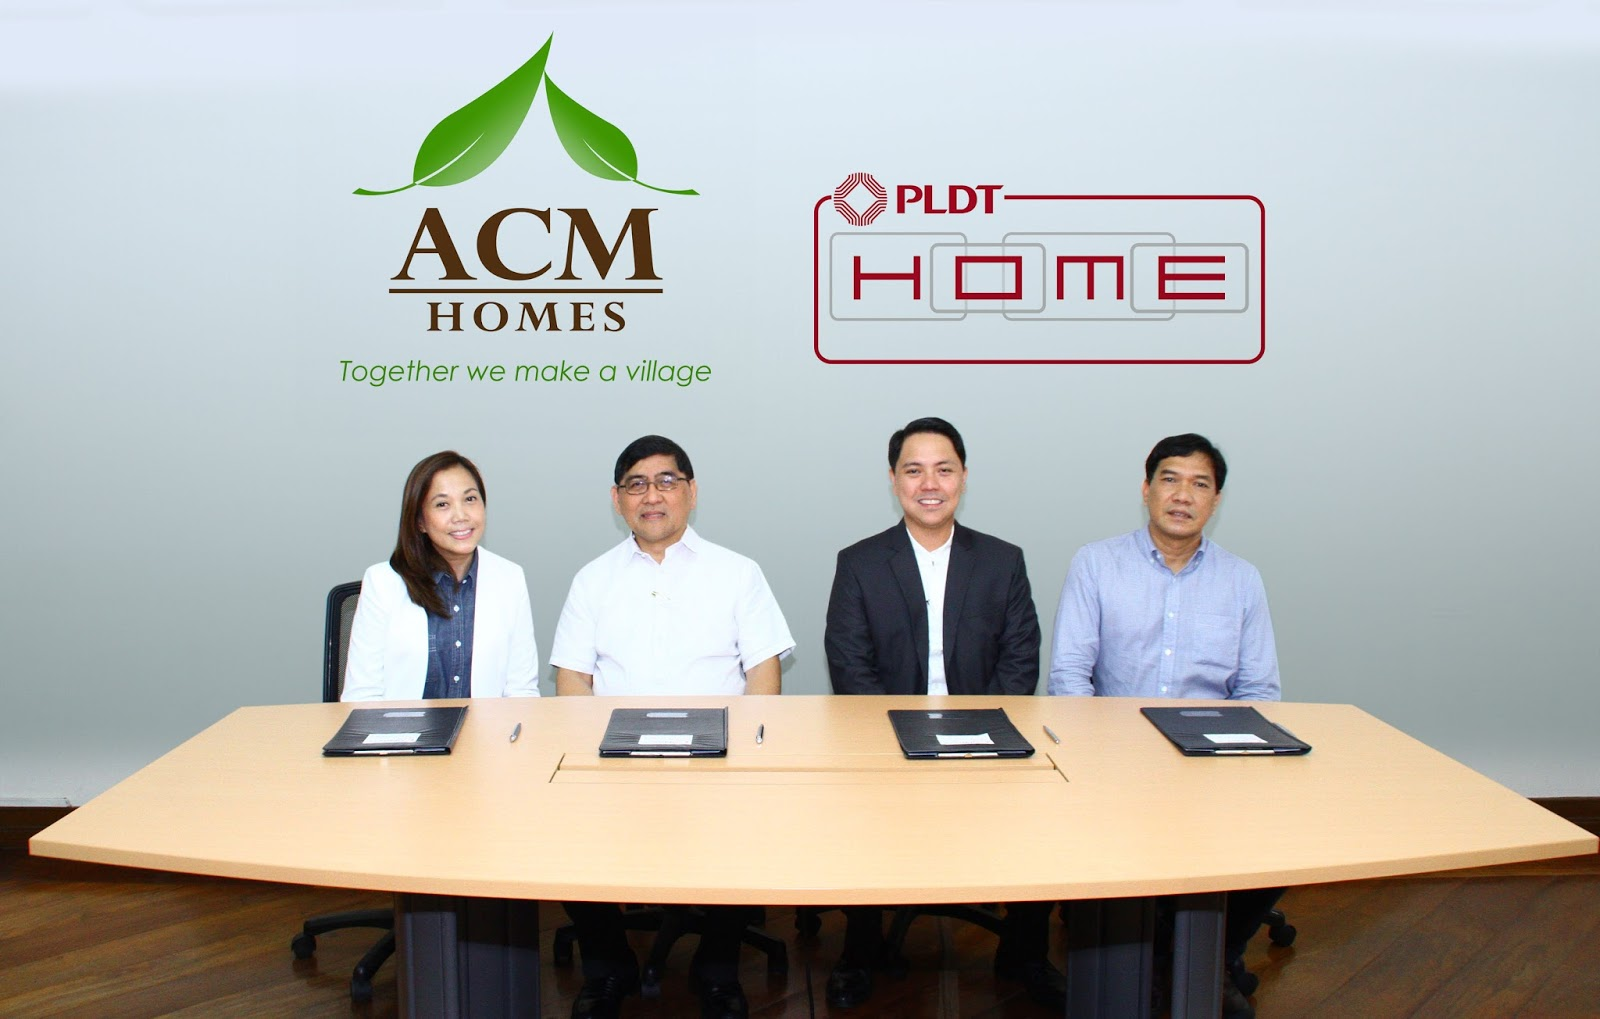 PLDT brings high-speed connectivity to ACM Homes